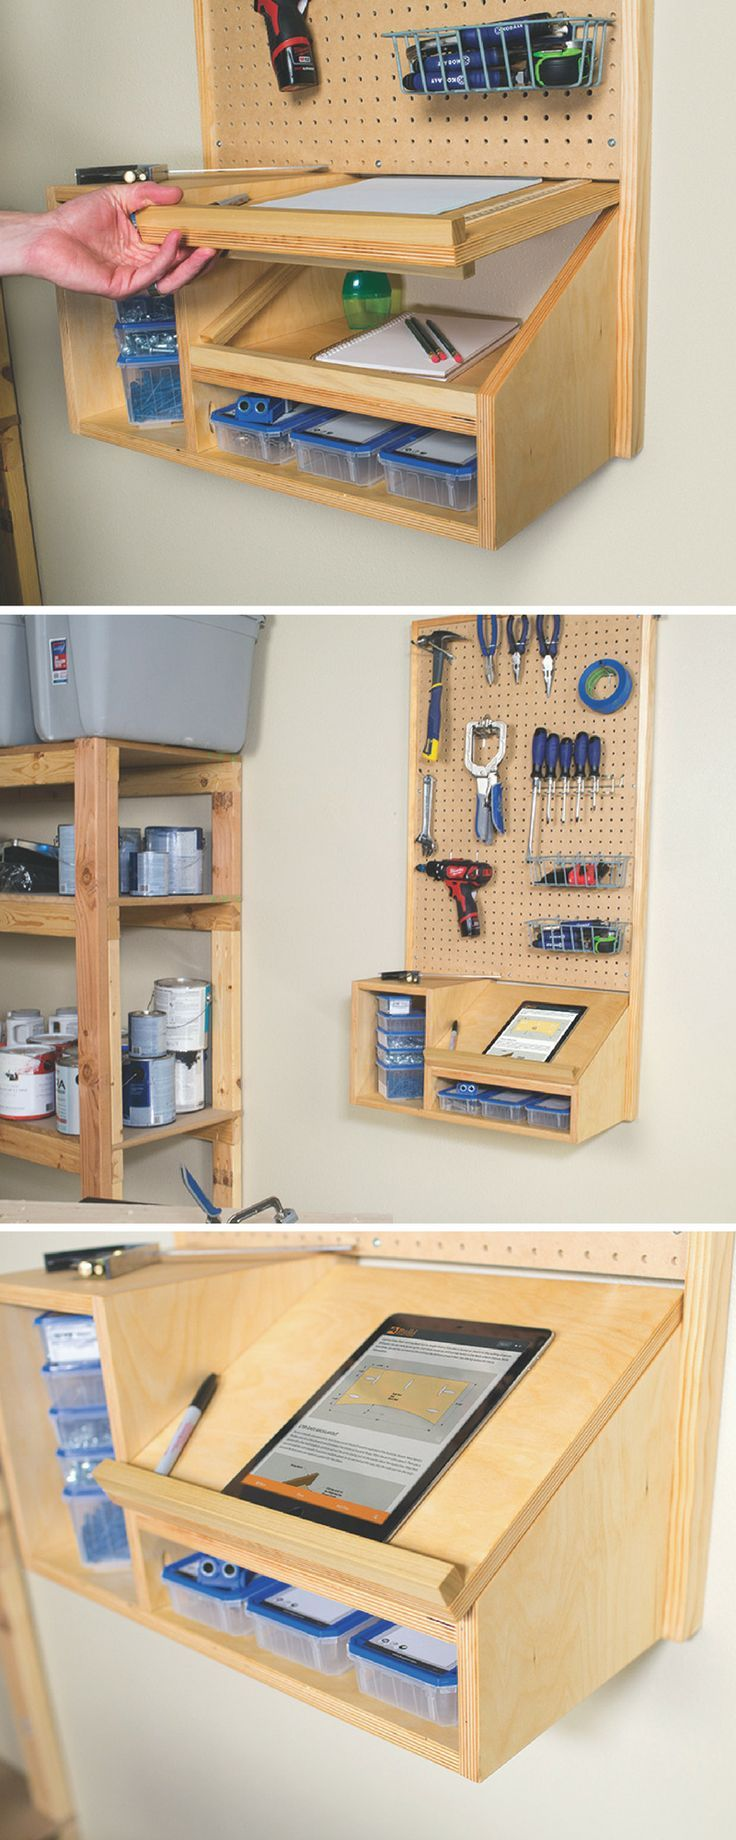 cordless tool charging station plans workshop solutions projects keeping your workspace organized is always a challenge but small tools can be garage workshop